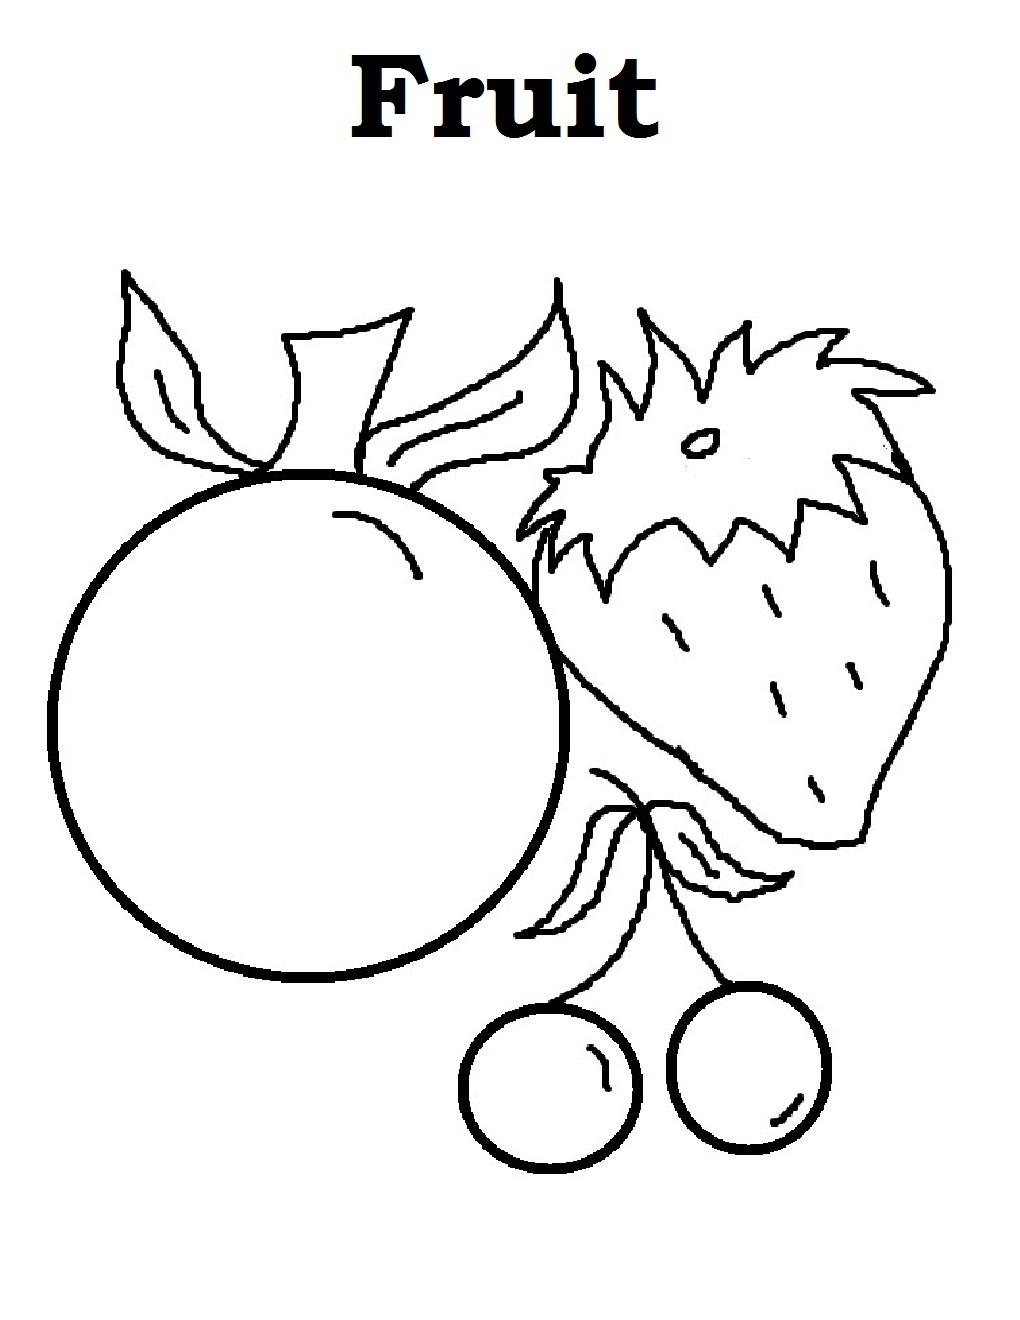 Free Printable Fruit Coloring Pages For Kids | fruits coloring pages for preschoolers